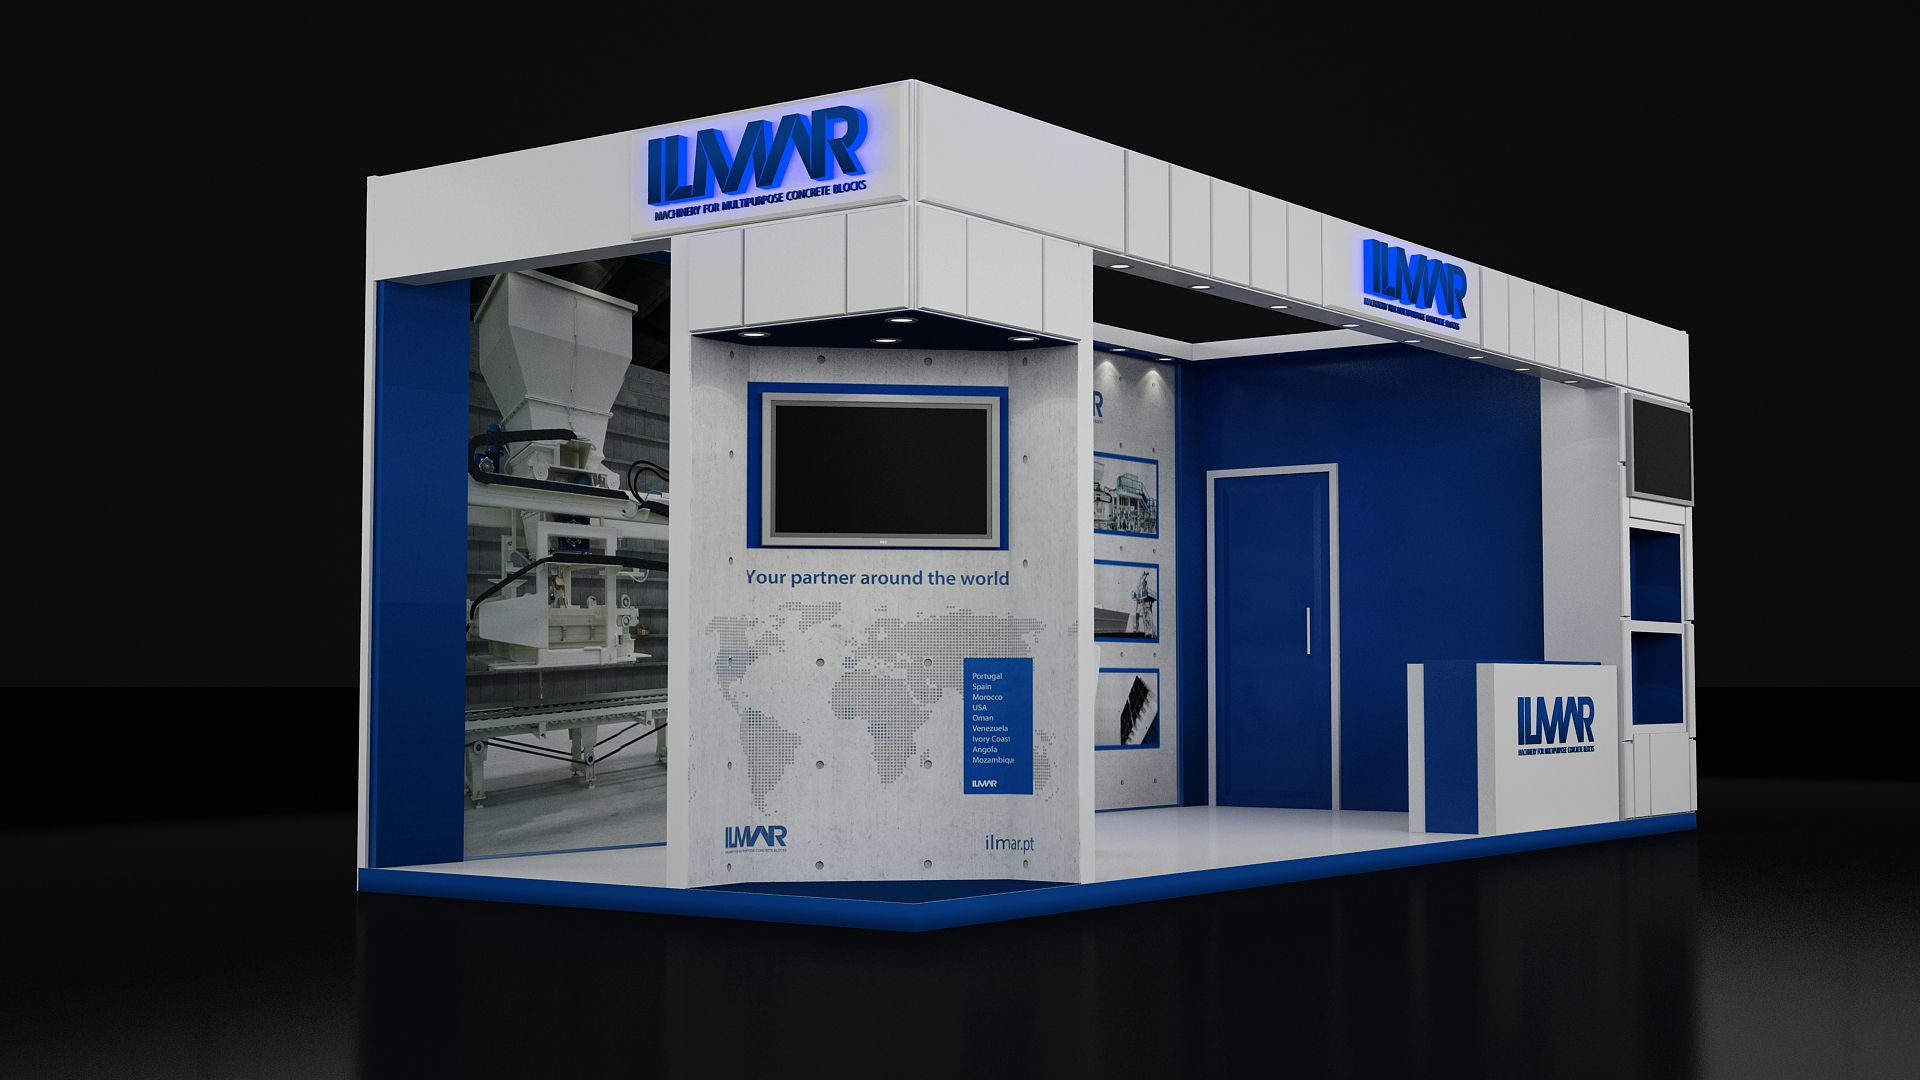 Expo Stand Egitto : Pin by beyman advertising on exhibition stands in egypt u2013 beyman